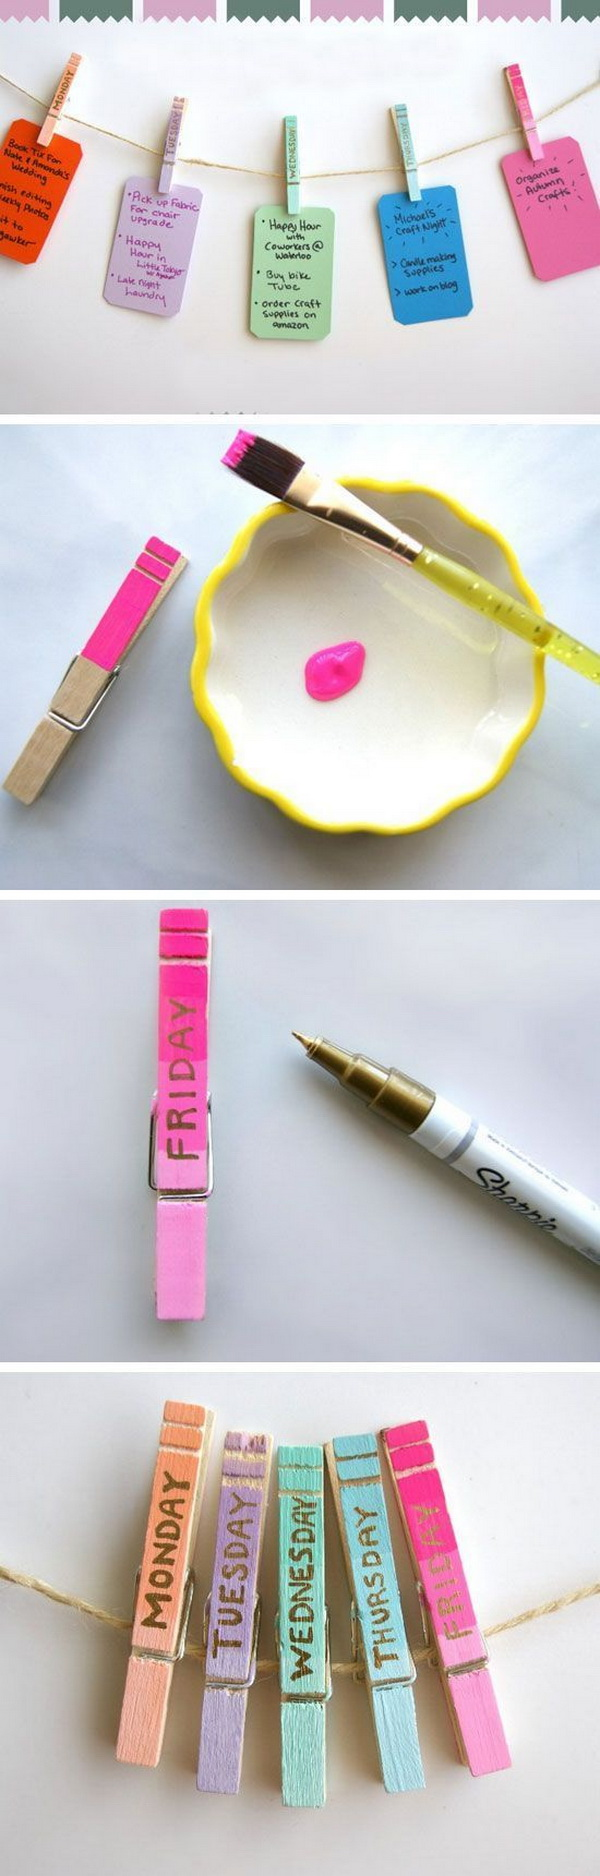 25 Diy Ideas Amp Tutorials For Teenage Girl S Room